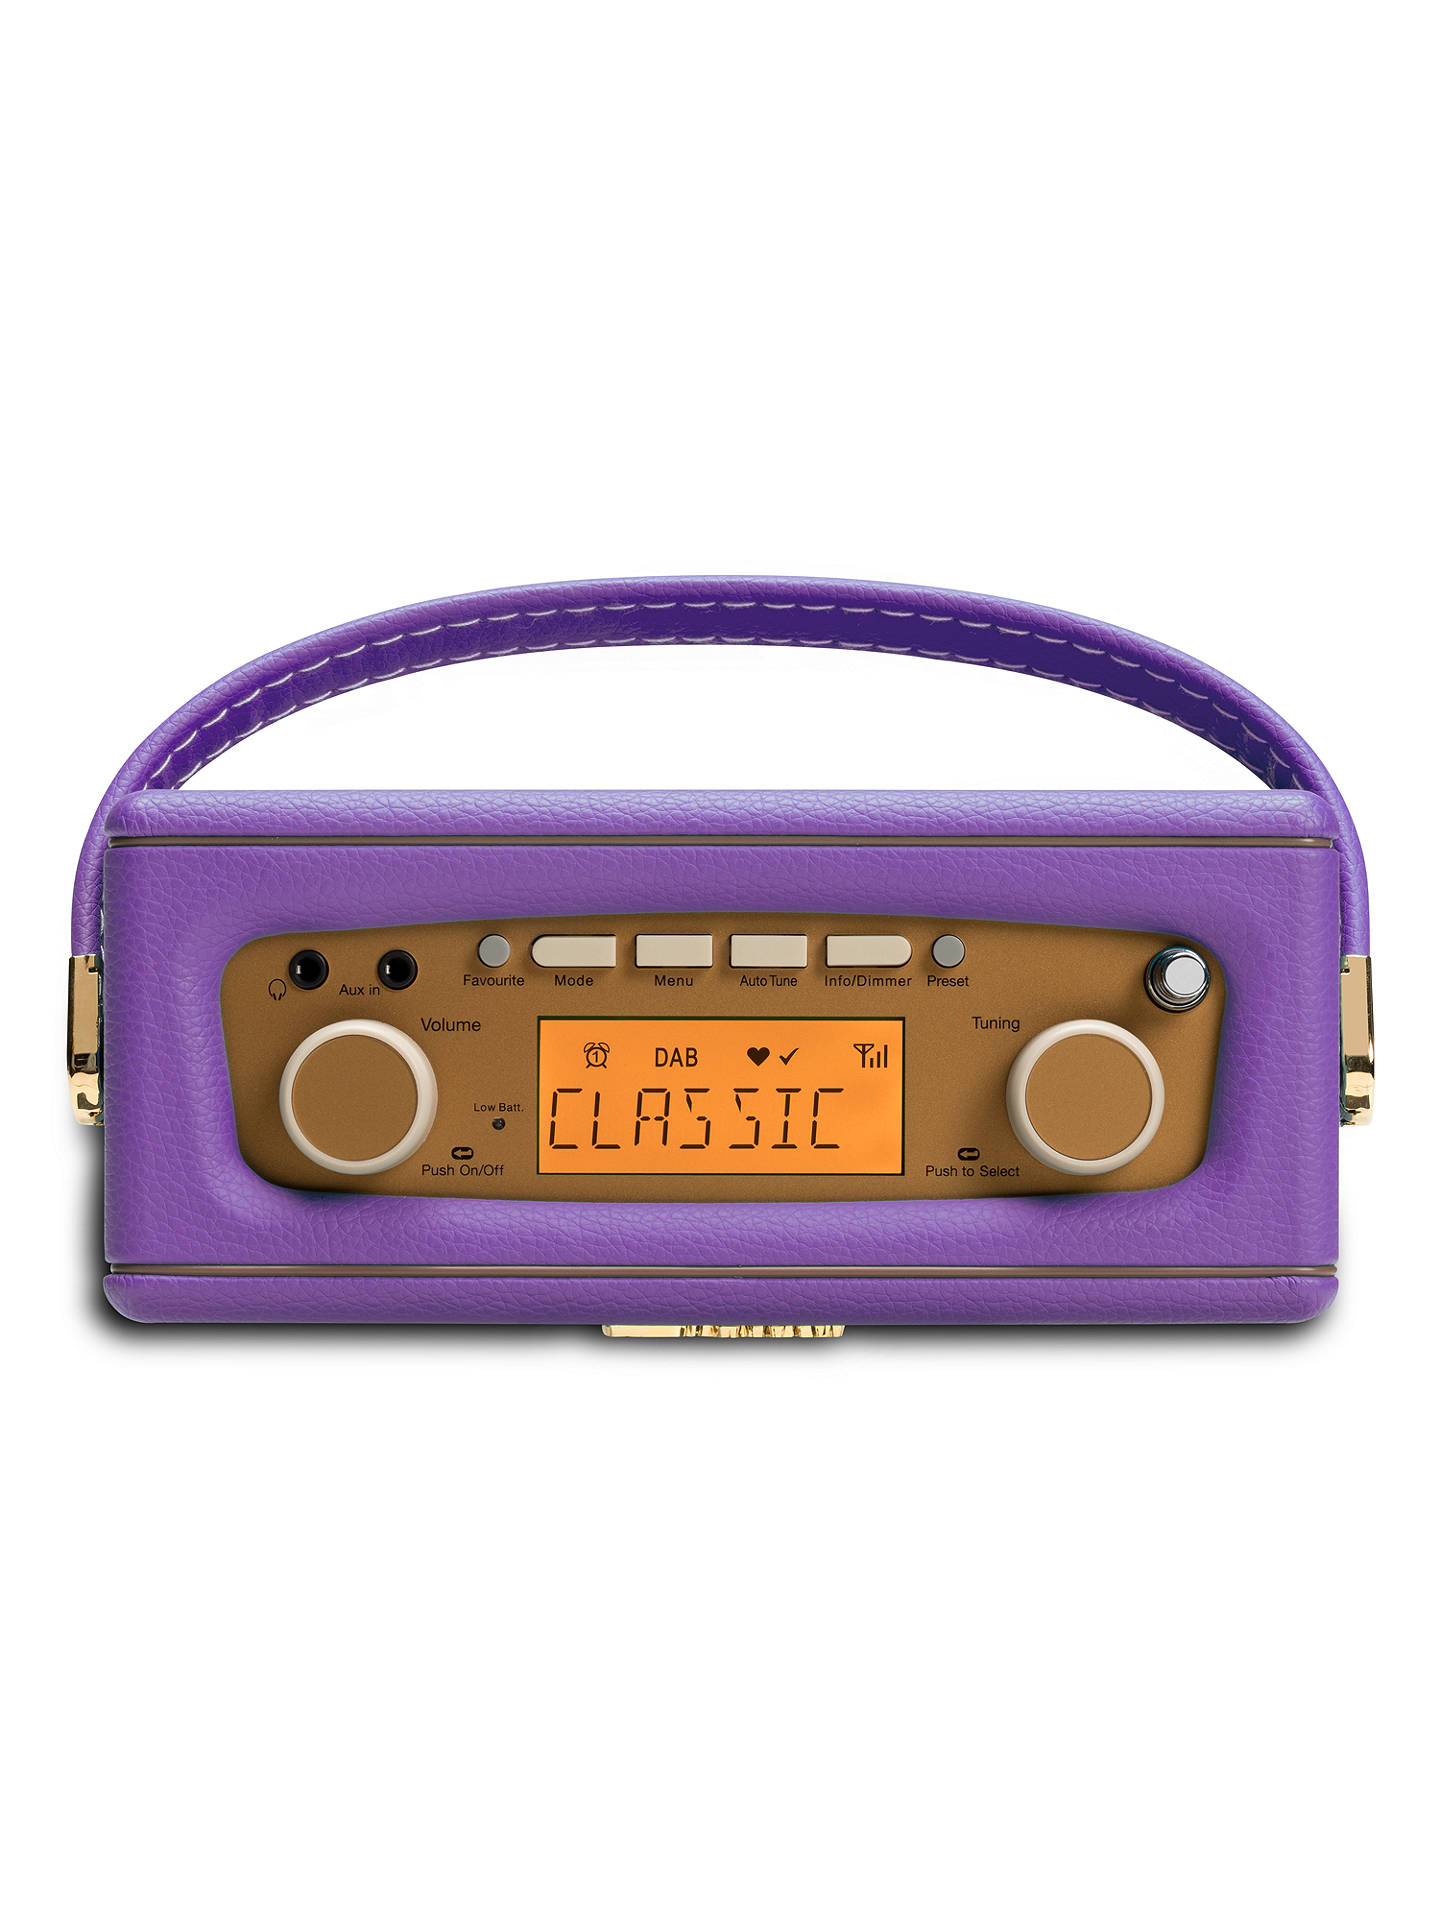 BuyROBERTS Revival Uno DAB/DAB+/FM Digital Radio with Alarm, Purple Online at johnlewis.com